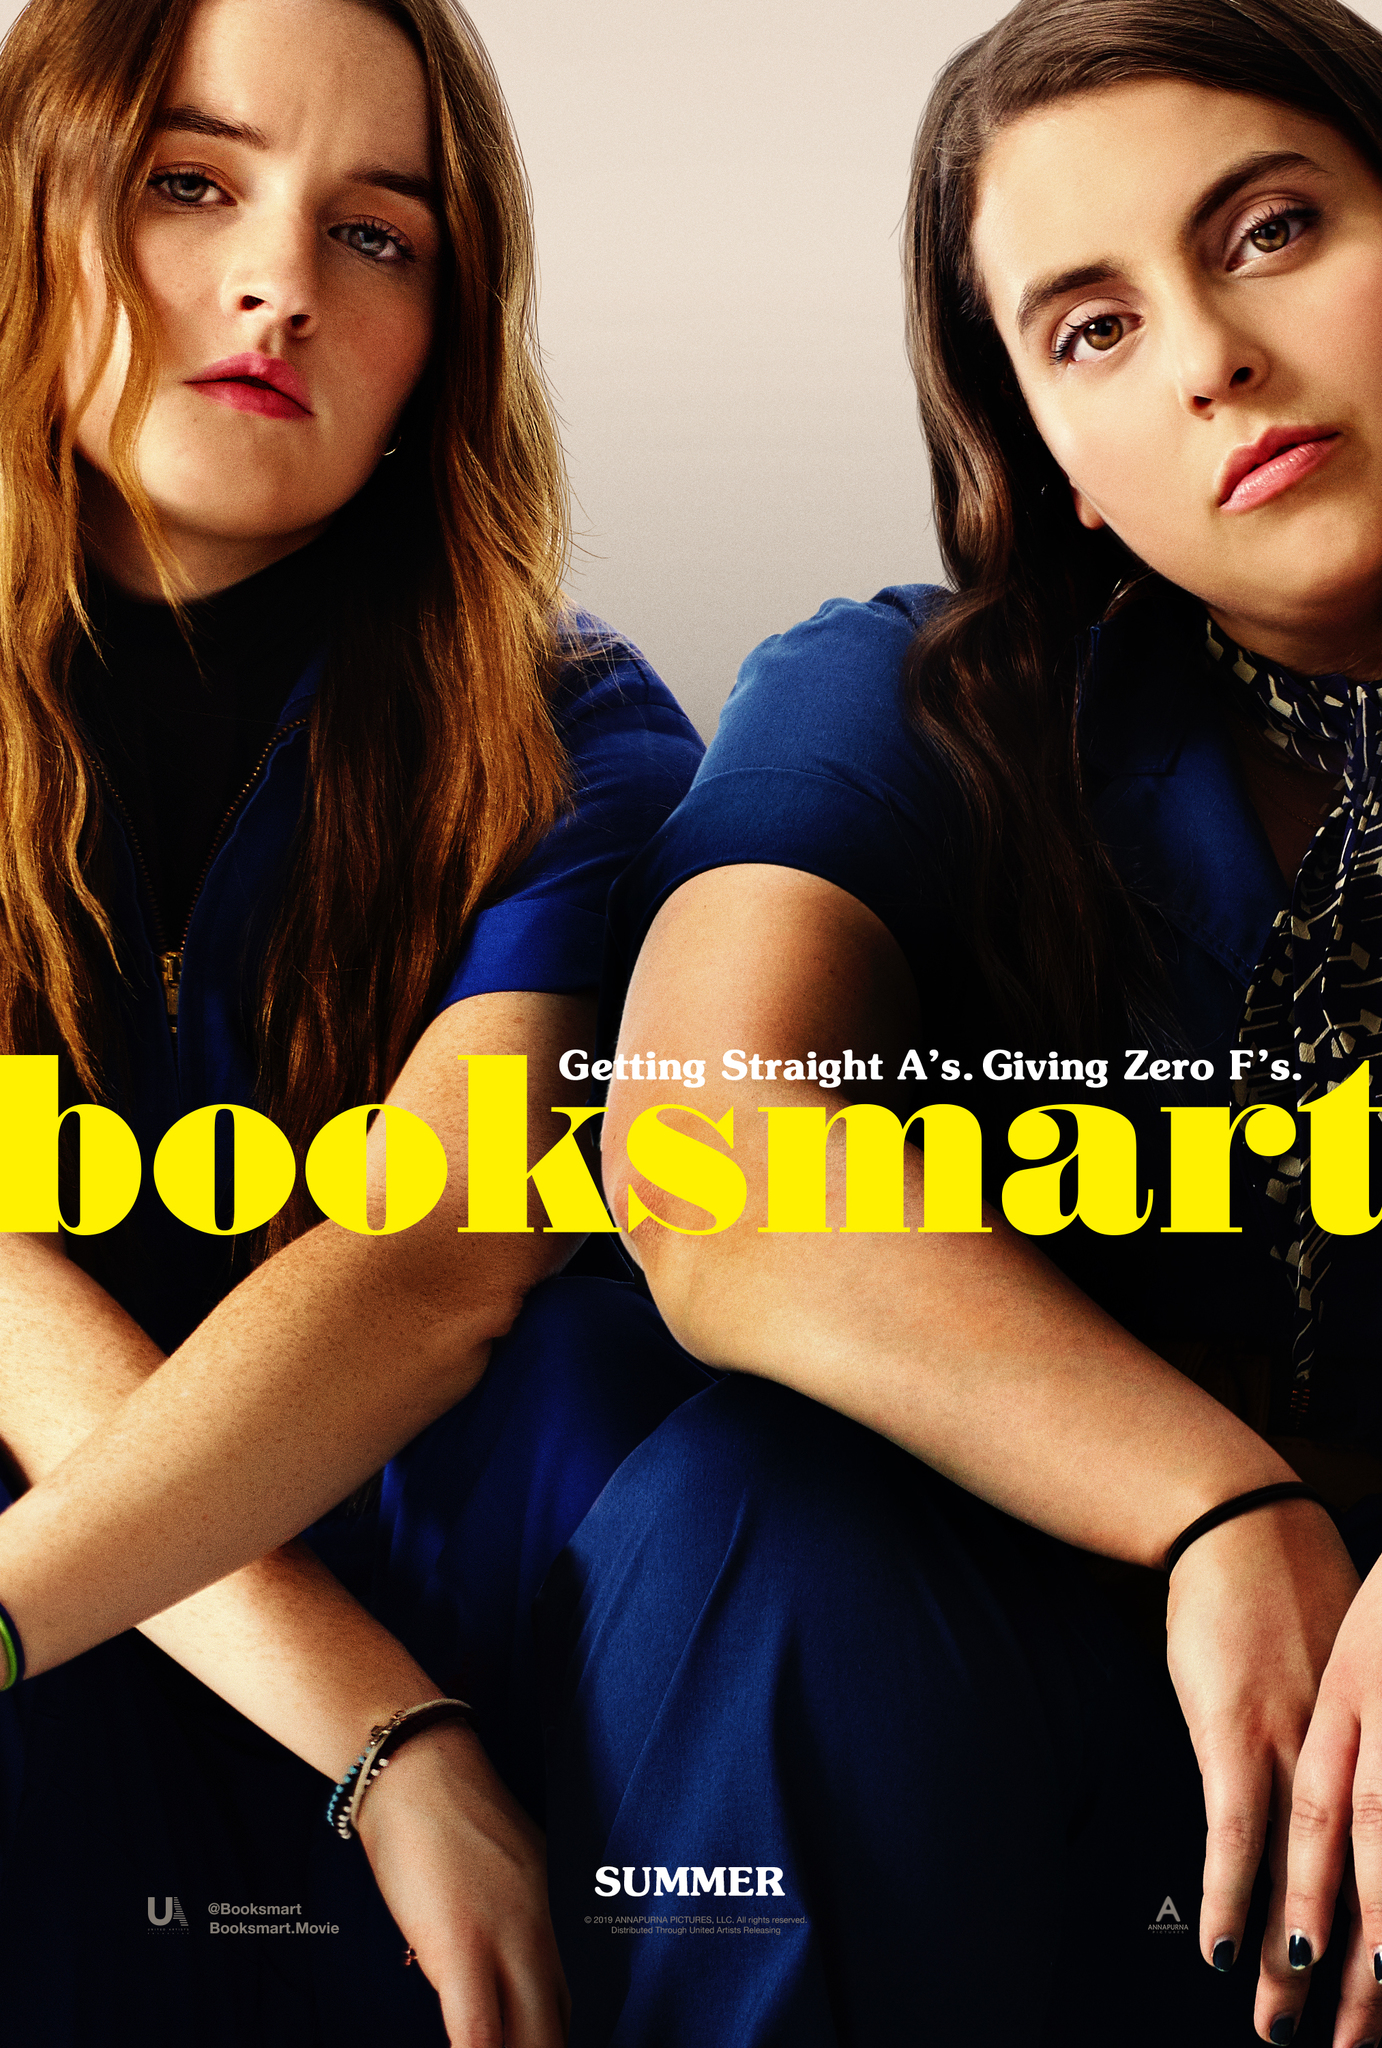 Booksmart   (2019) dir. Olivia Wilde Rated: R image: ©2019  United Artists Releasing